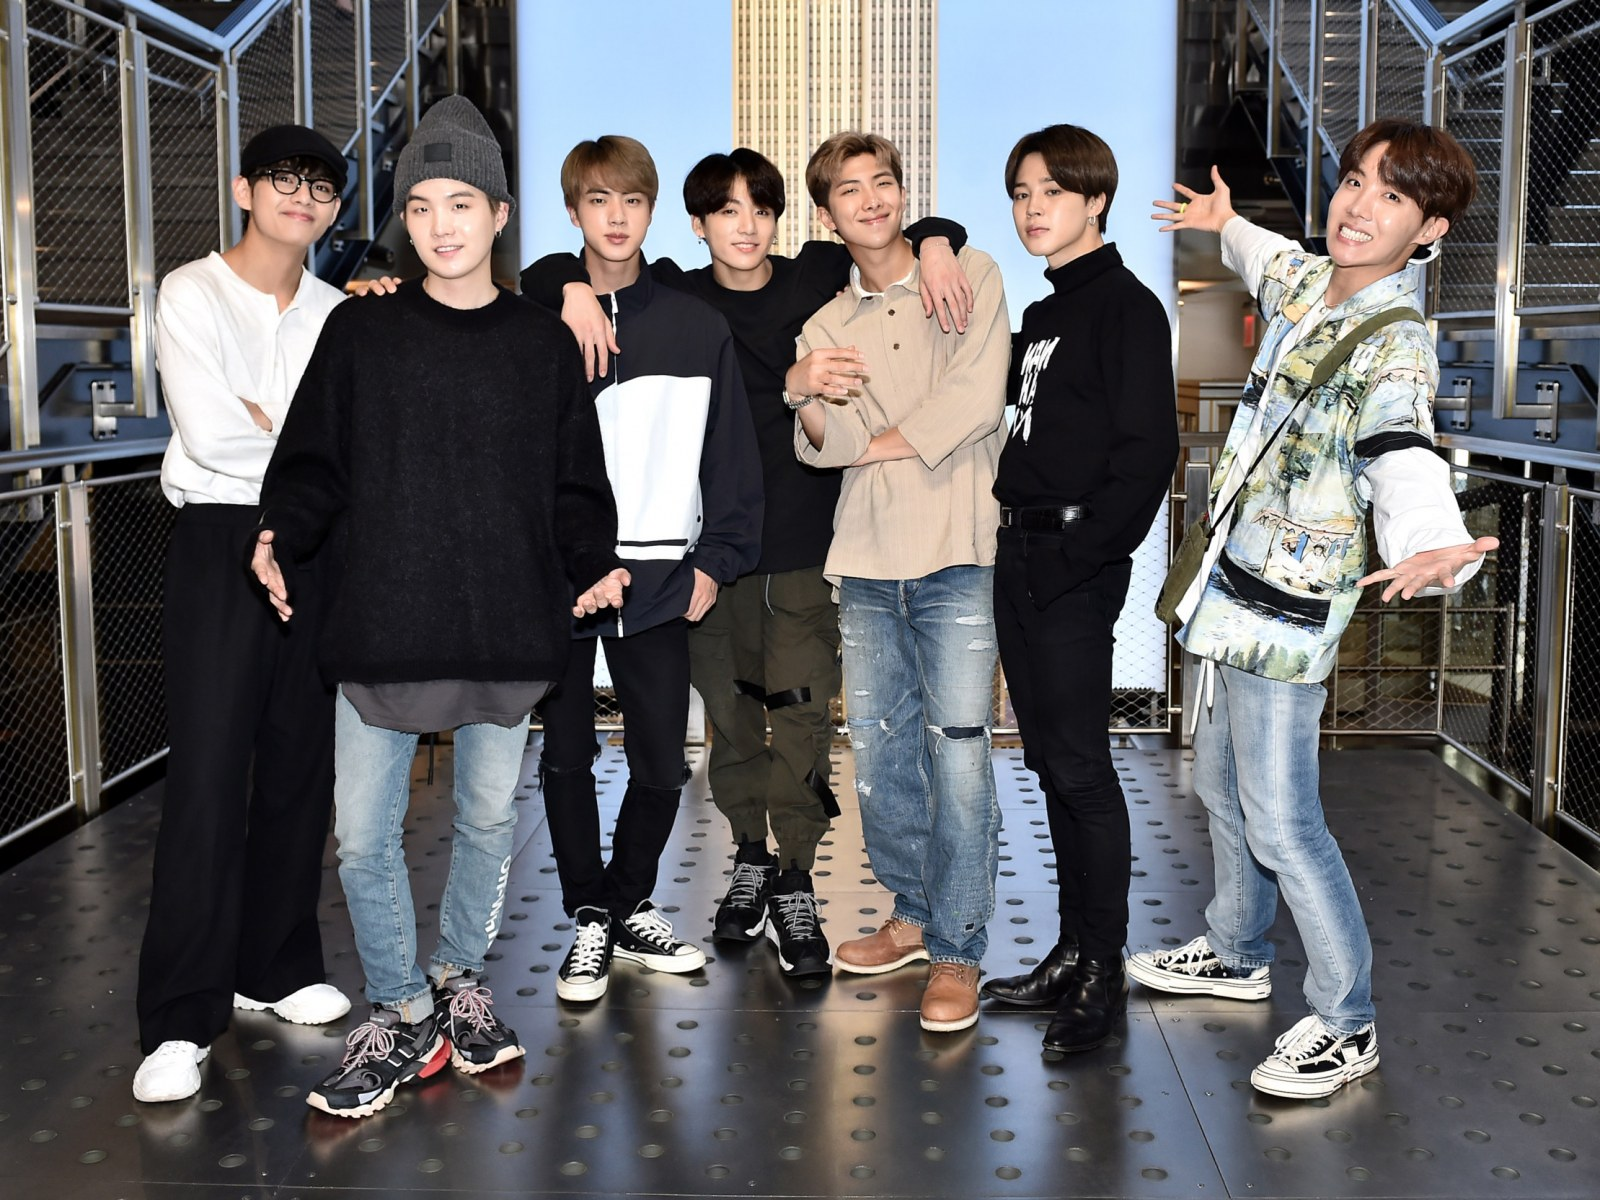 The boys of BTS deserve to be celebrated on their birthdays like kings. Make sure you know what day to celebrate who and learn their birthdays.